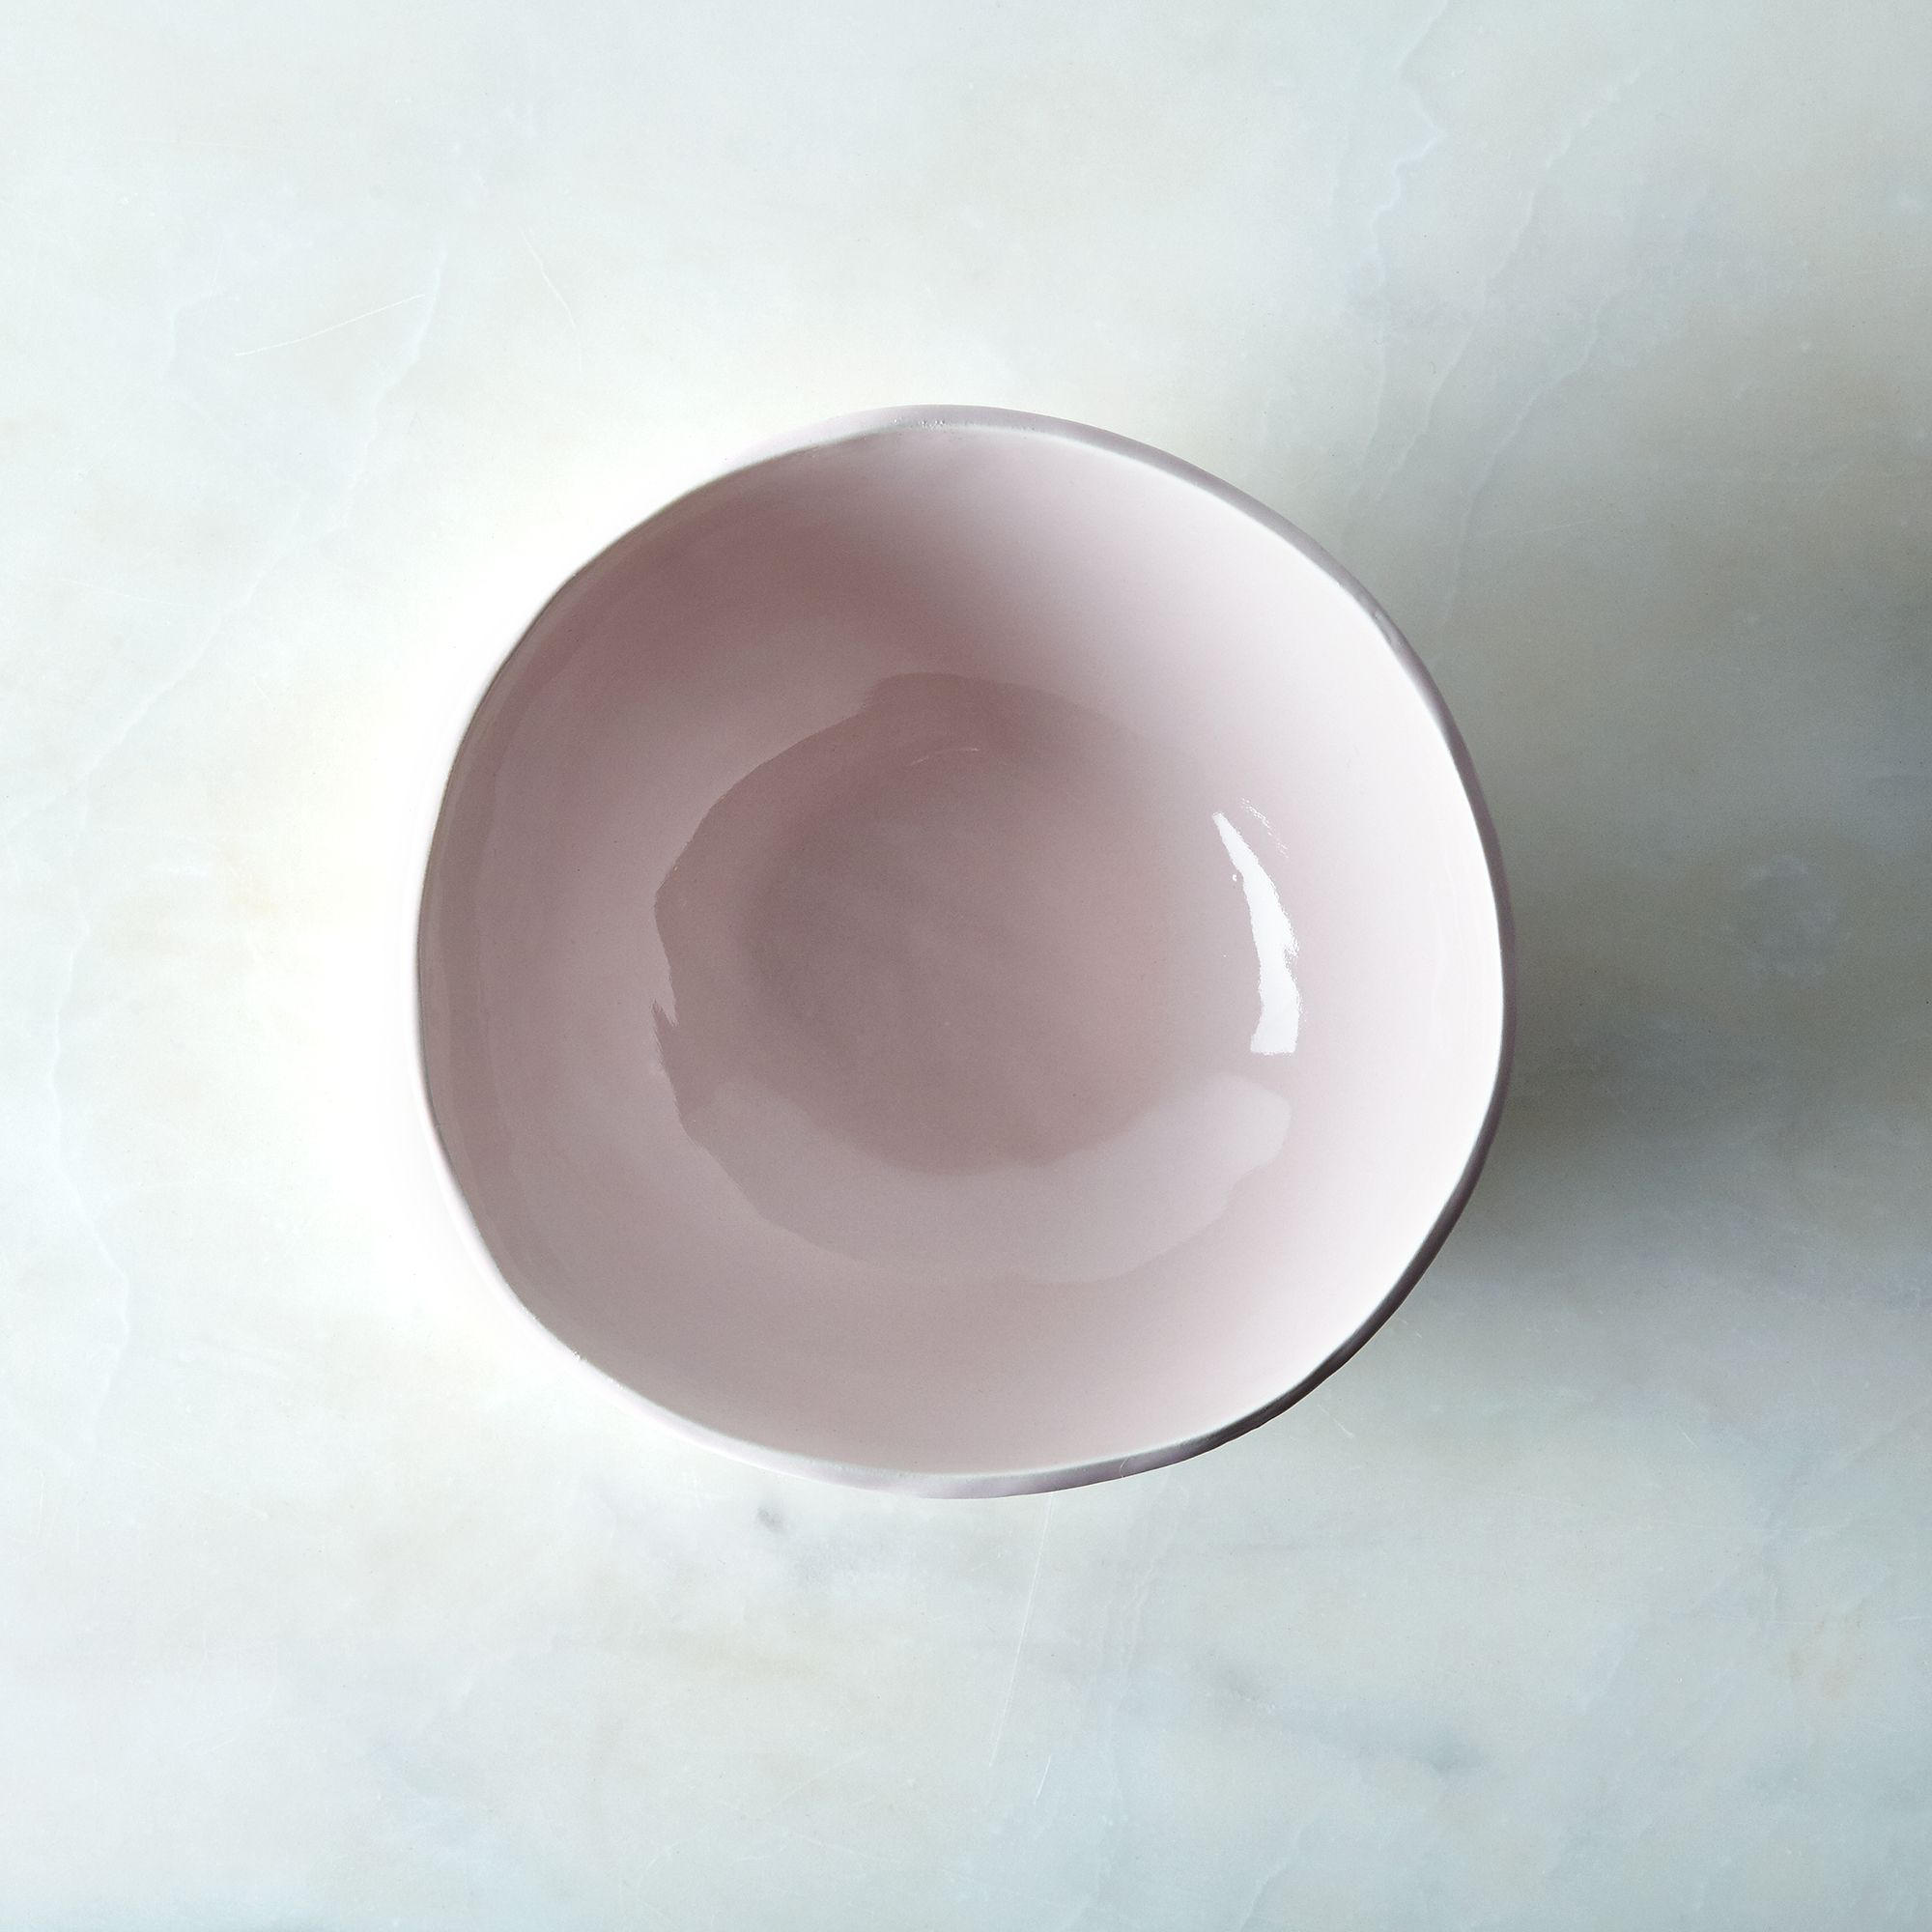 95b16324 c8d6 11e5 9cb7 0ec3b80ccb89  2016 0119 food52 by looks like white glossy pink porcelain serveware large porcelain salad bowl silo option rocky luten 002